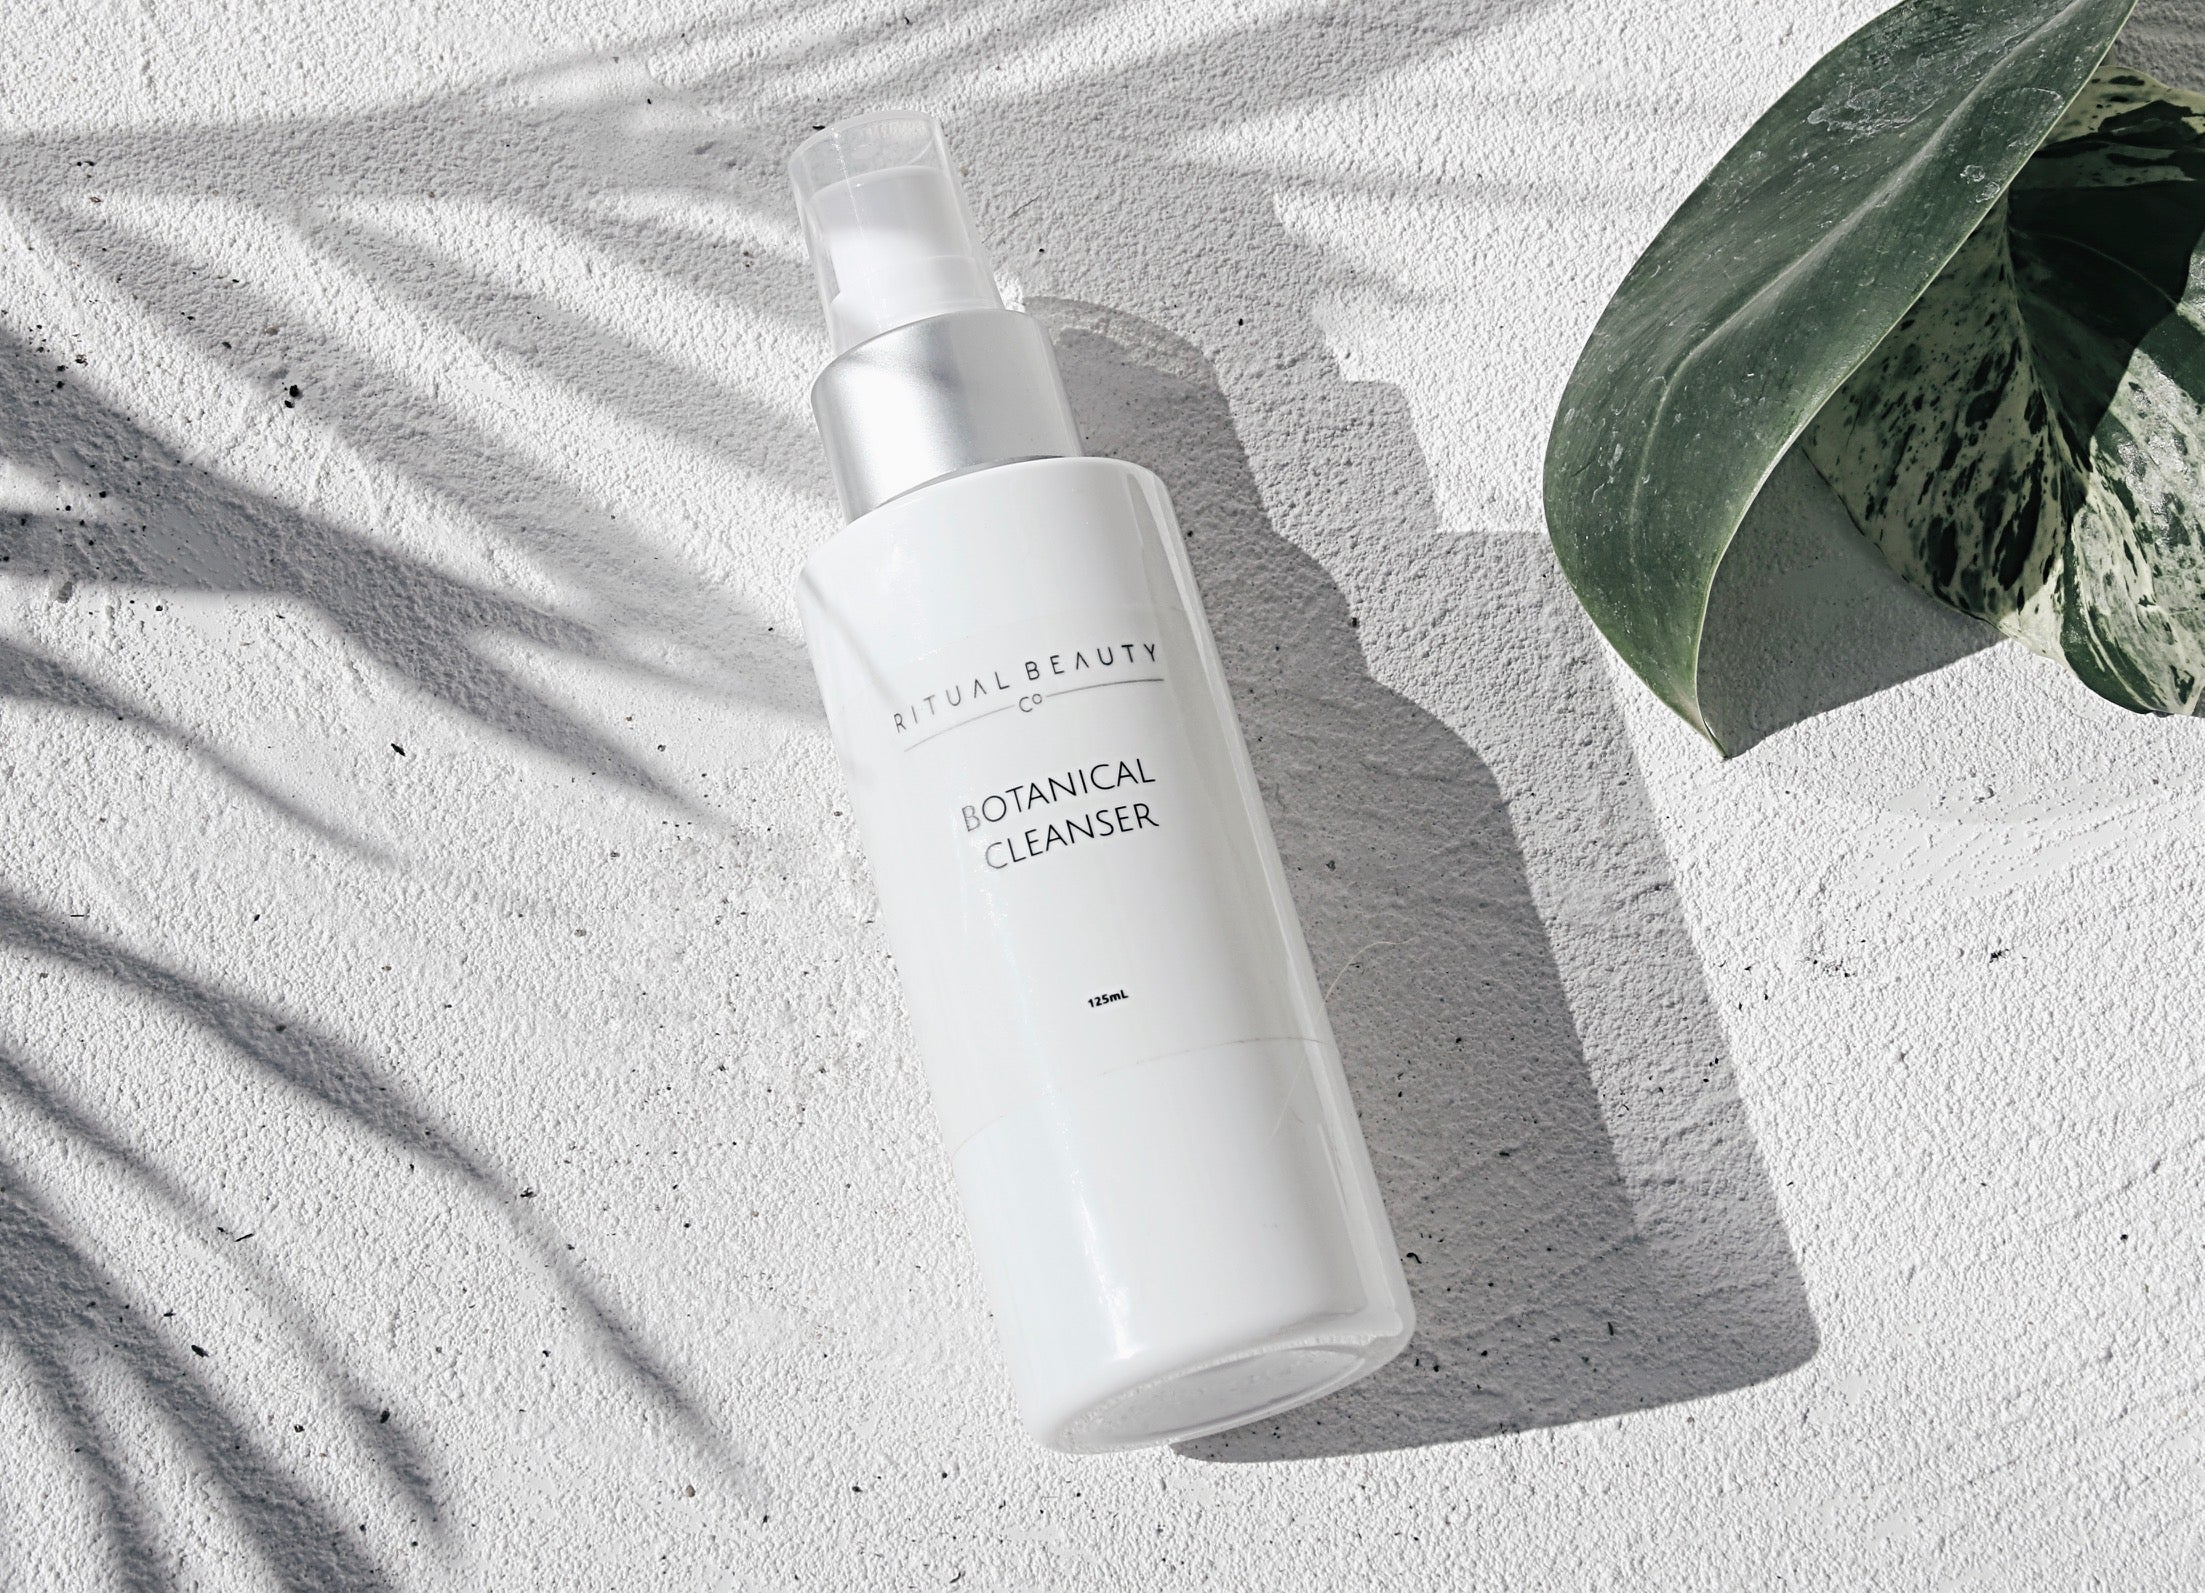 BOTANICAL CLEANSER 60mL